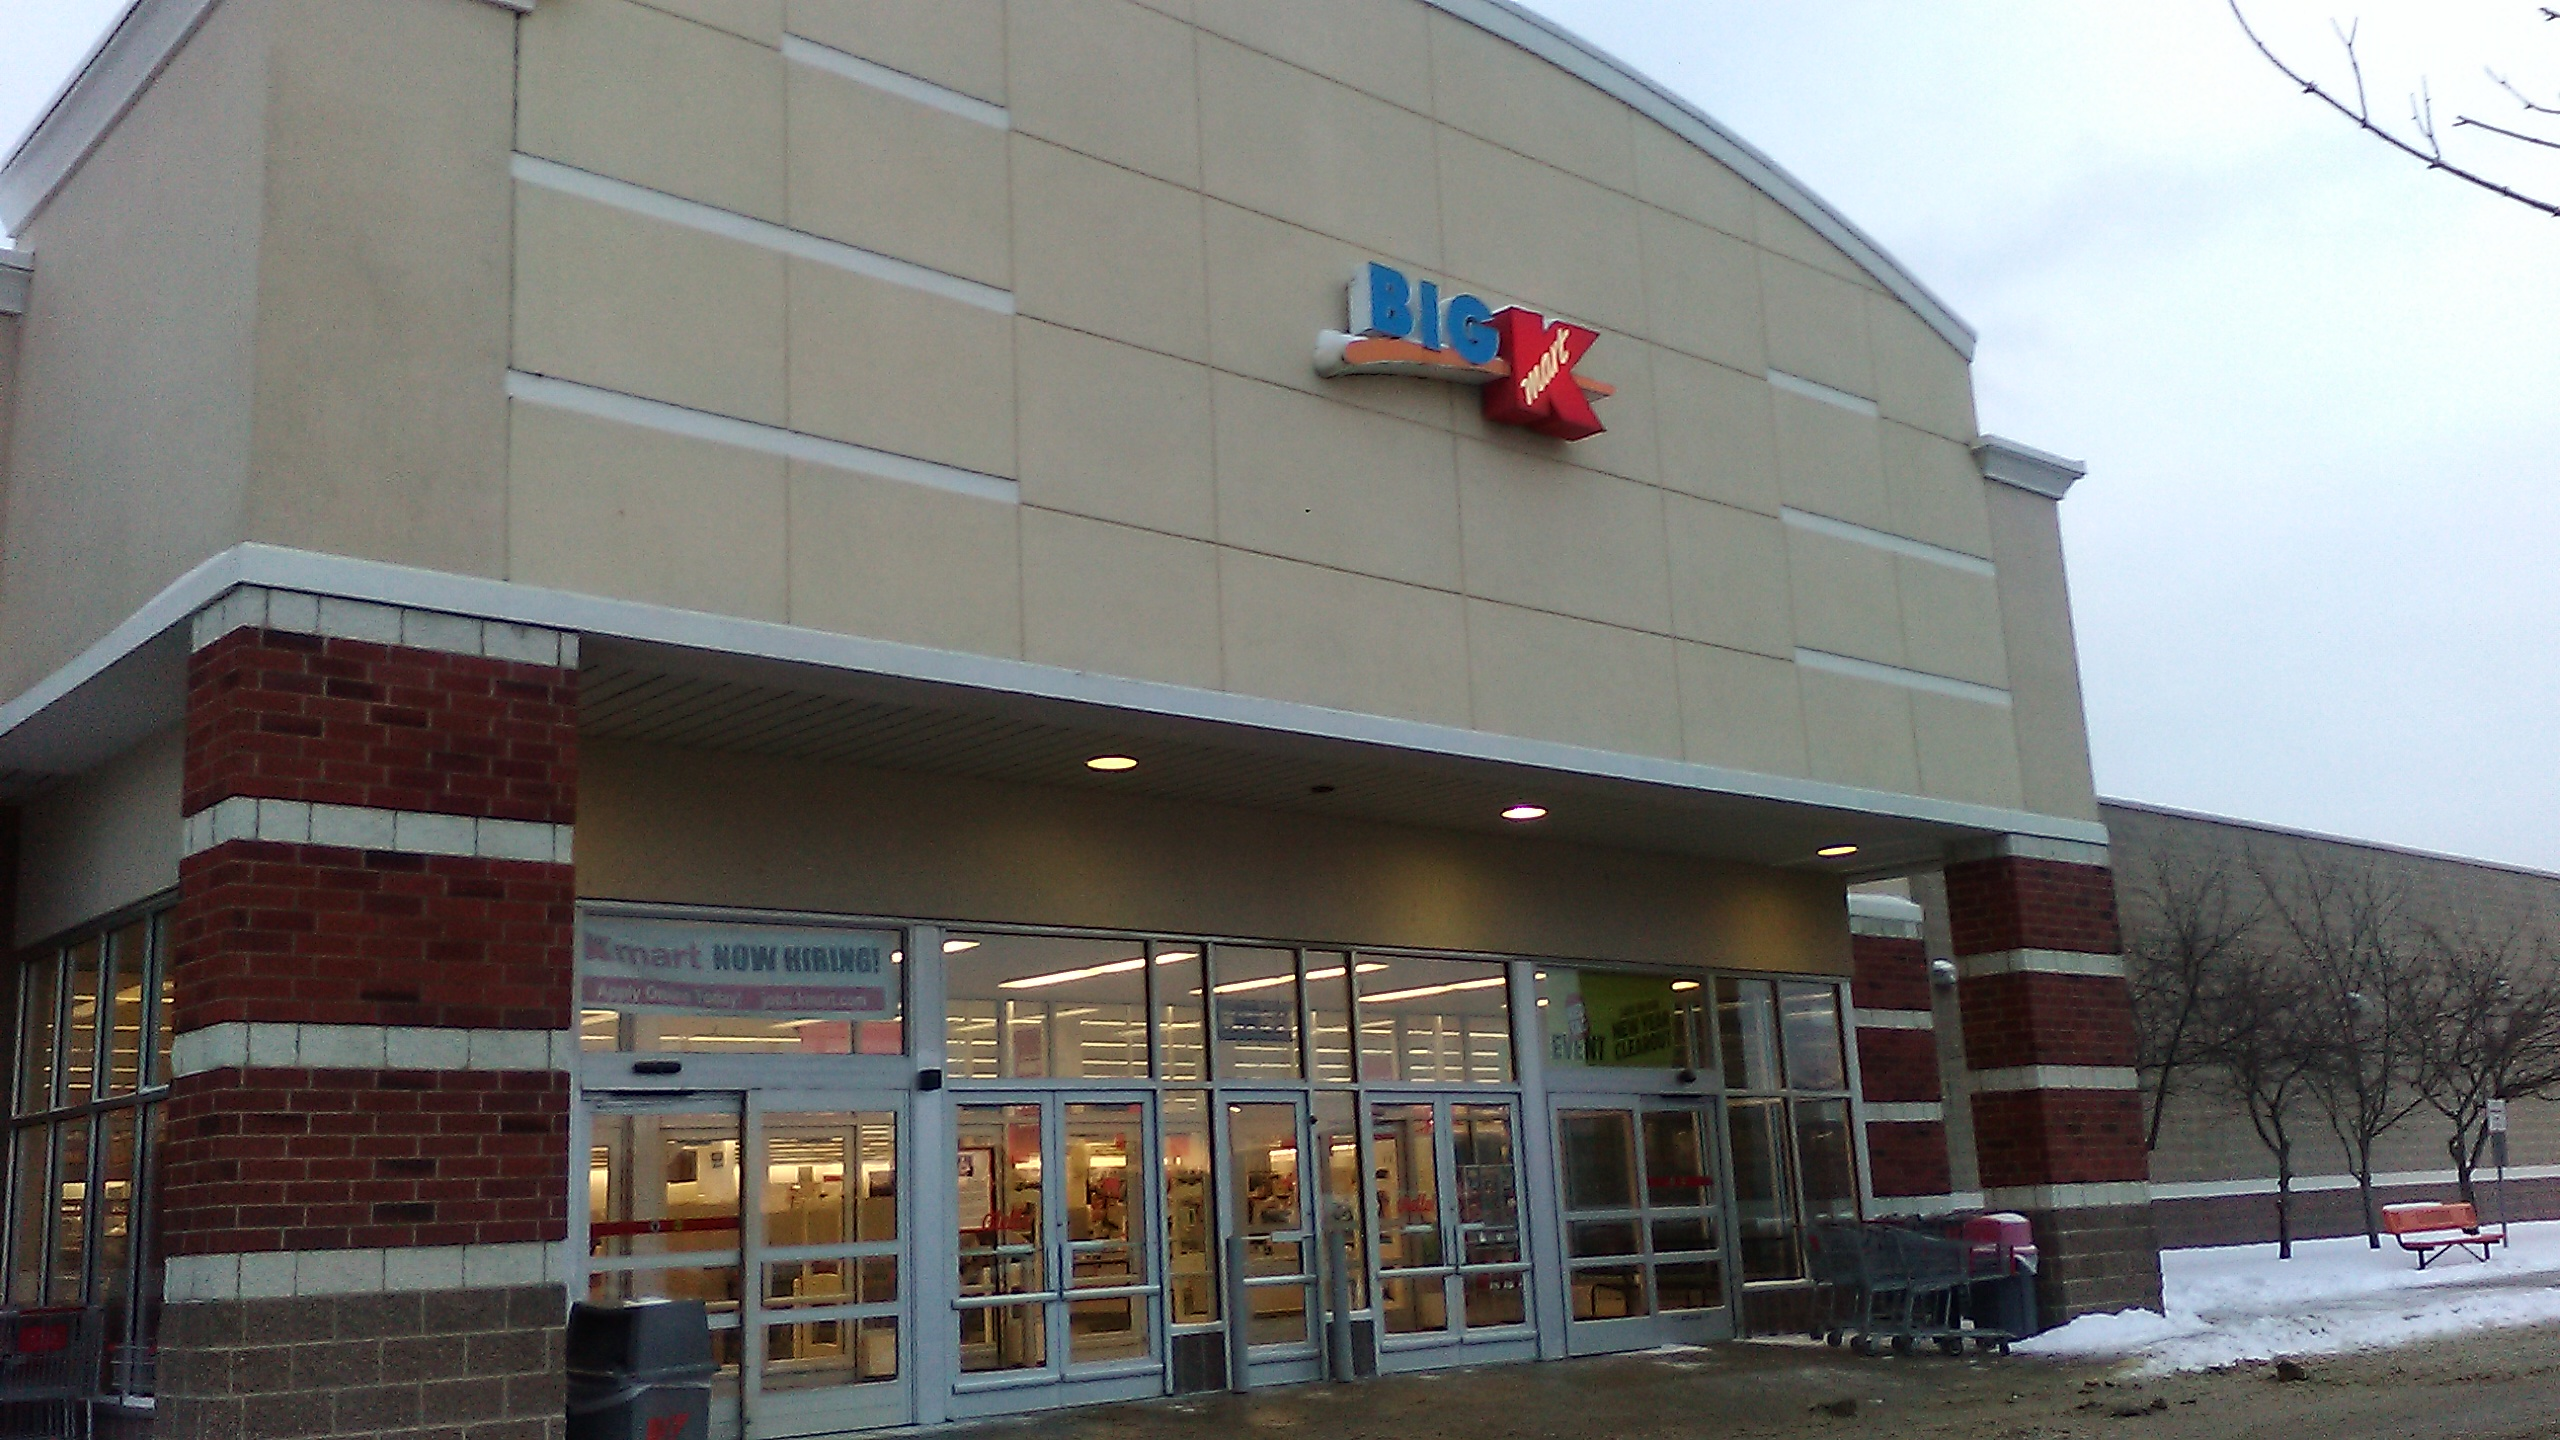 Mandeville Kmart will close in early April, company announces